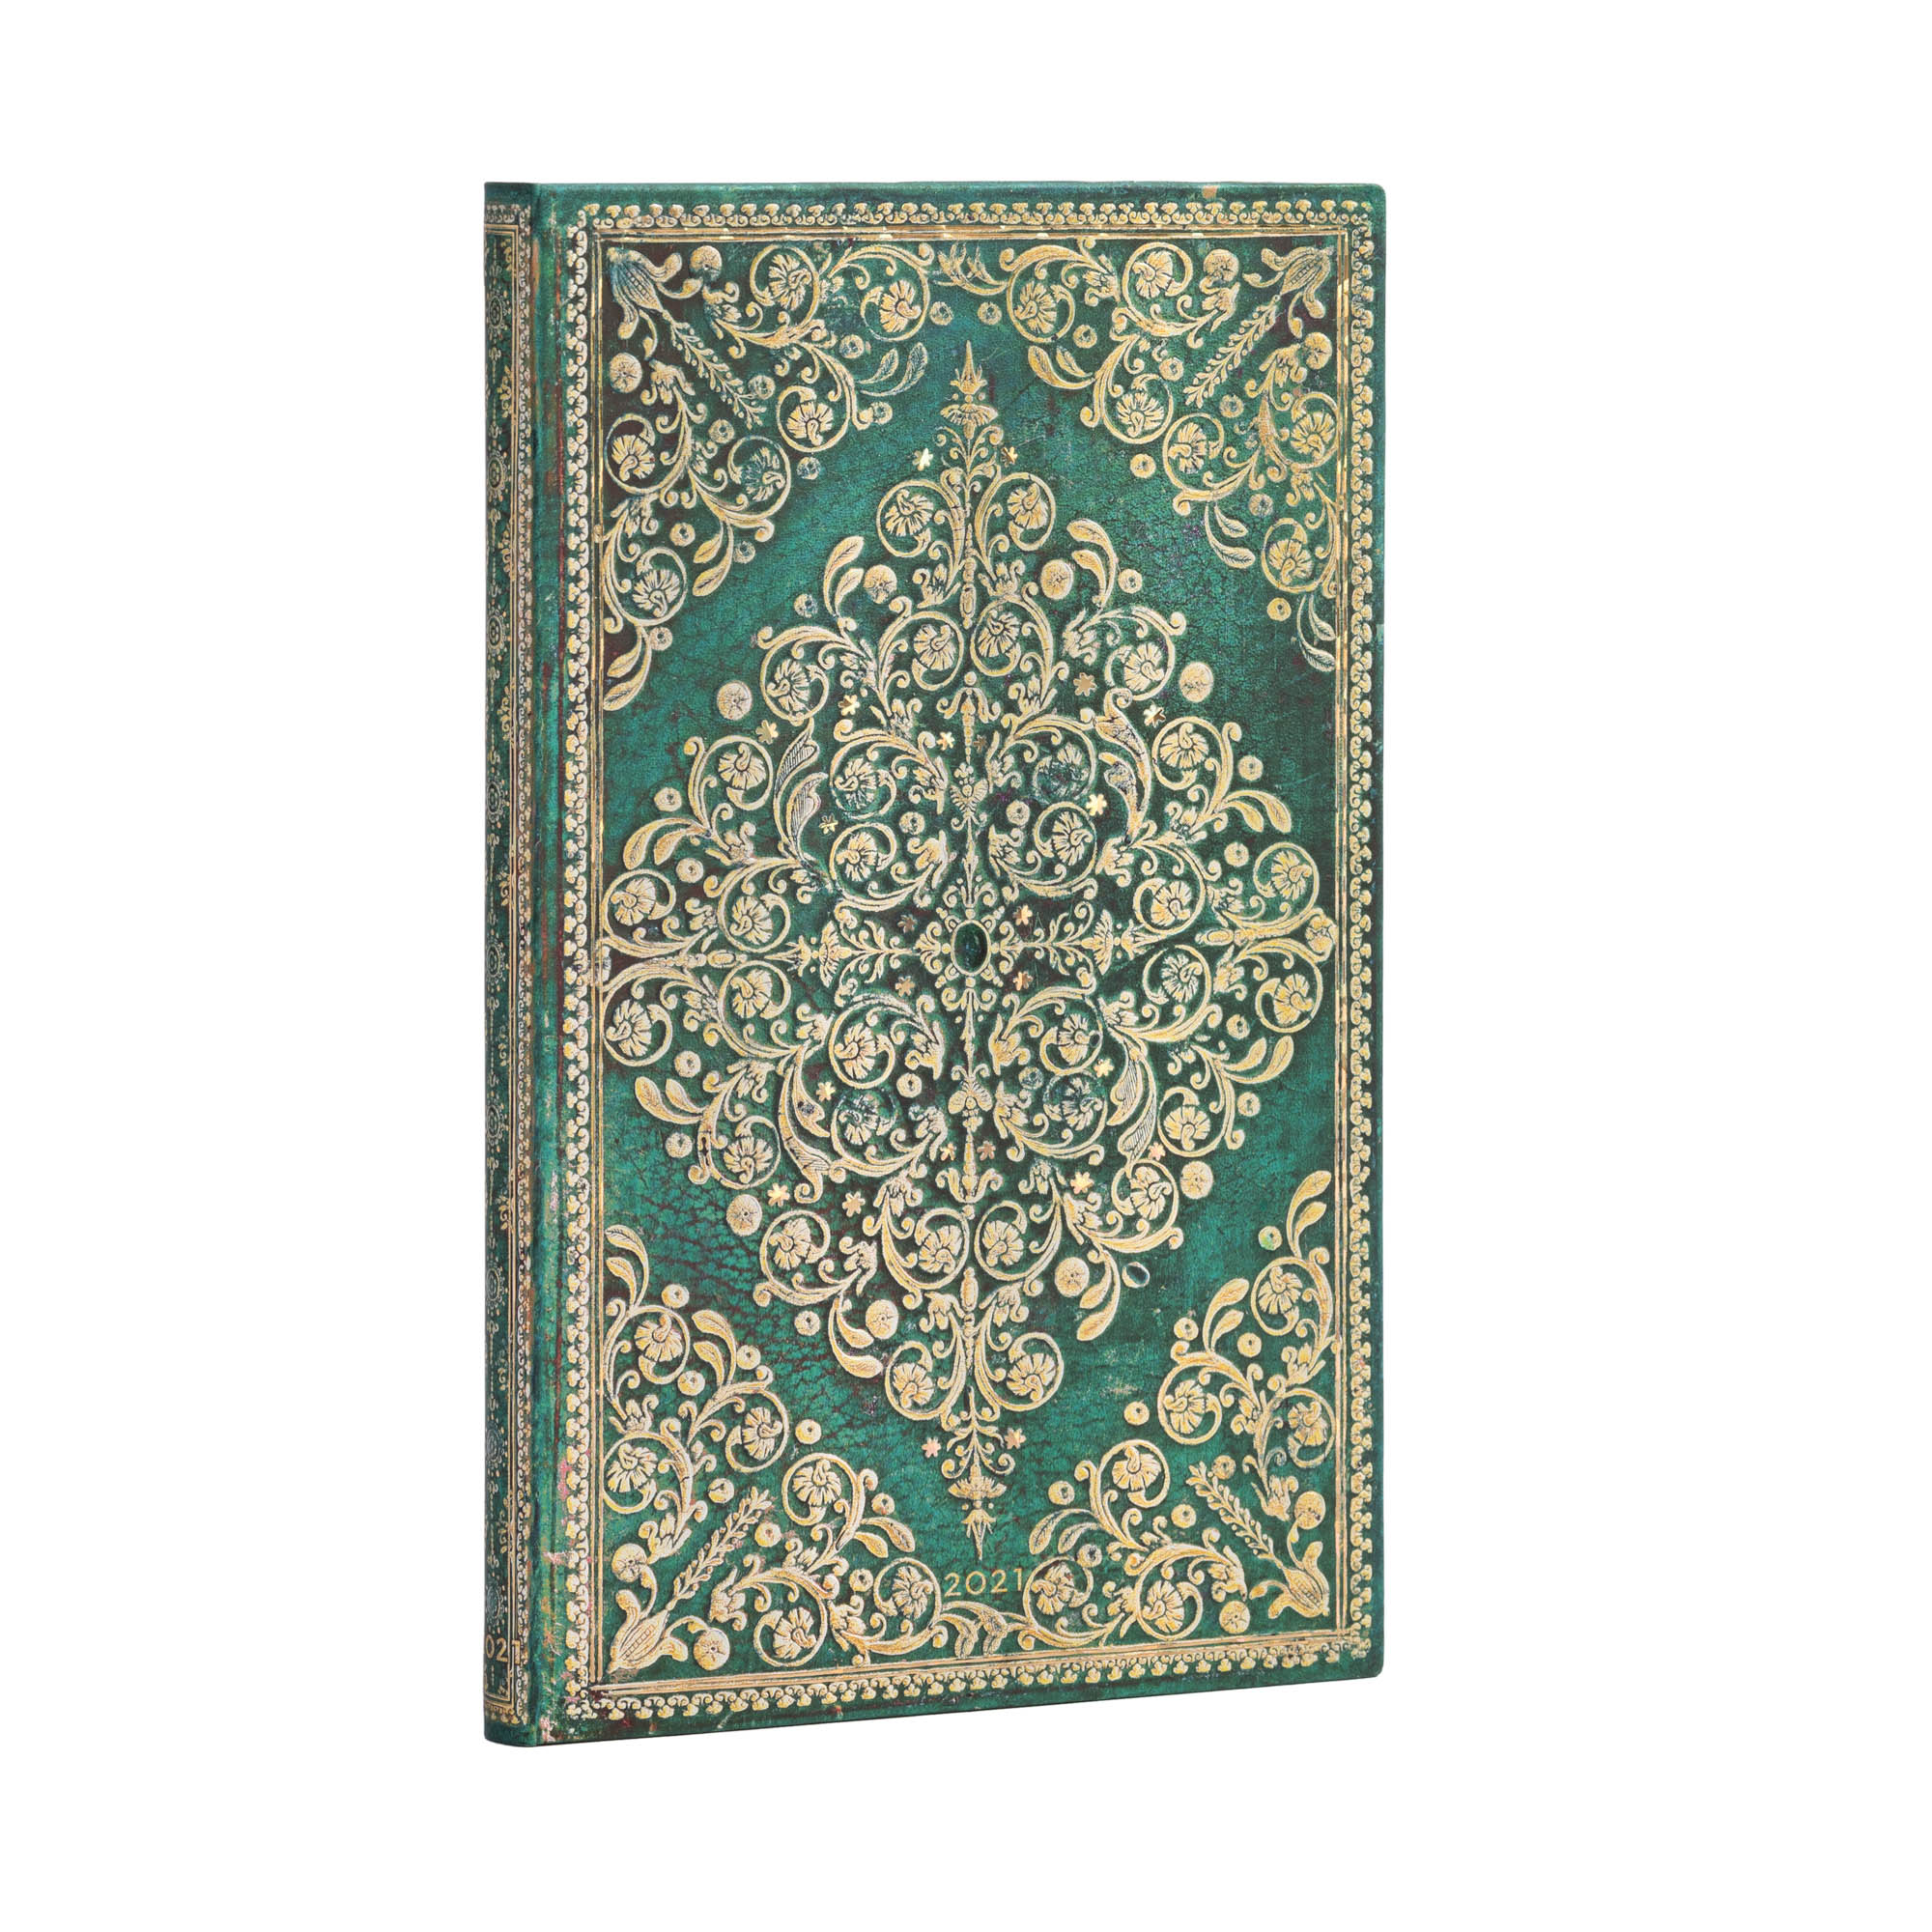 Paperblanks Maxi Oceania 2021 Week-At-A-Time Planner